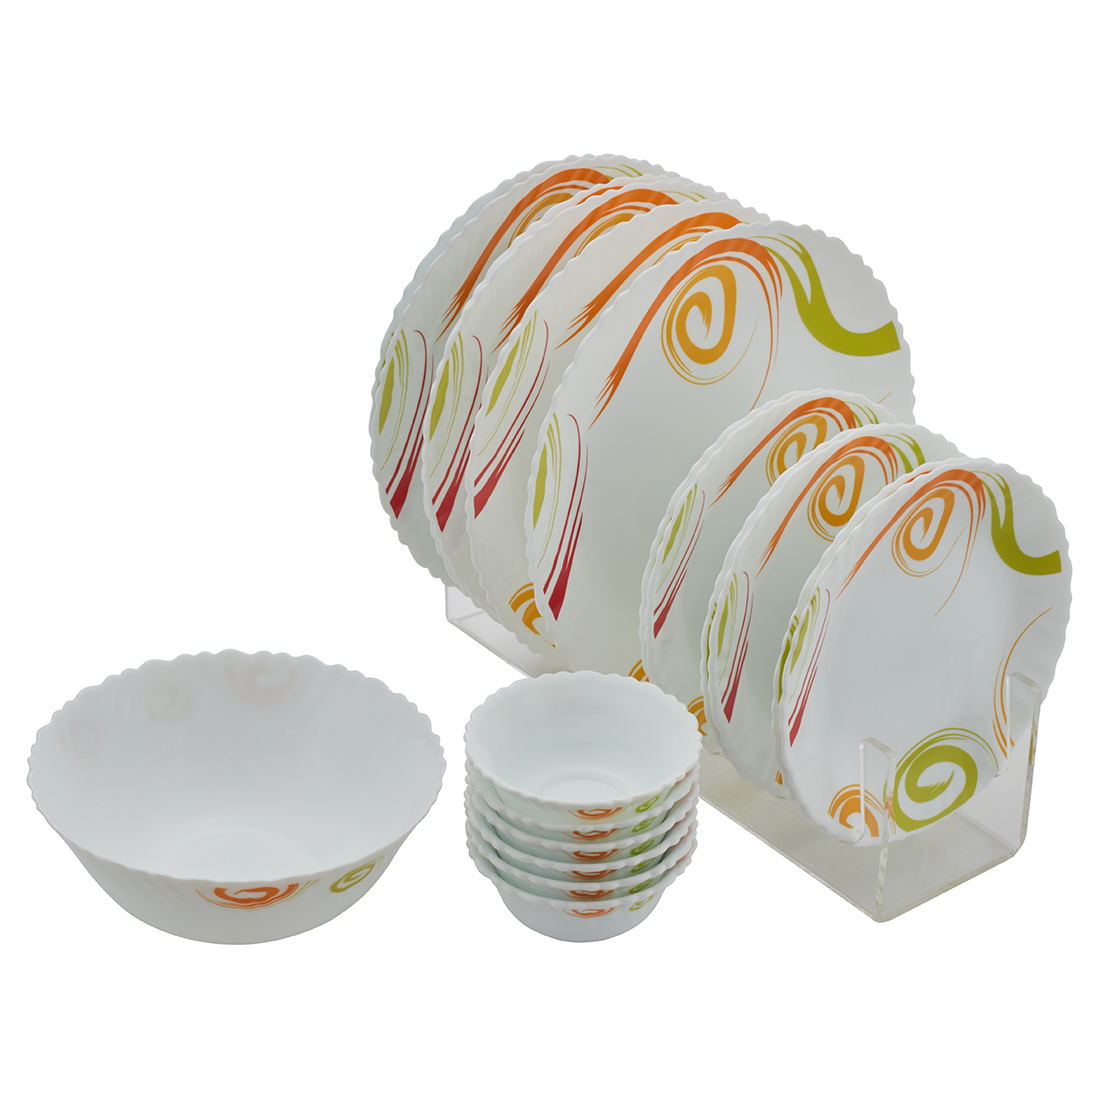 Feast Symphony Flt 19Pcs Set Opalware Dinner Sets in White Colour by Living Essence